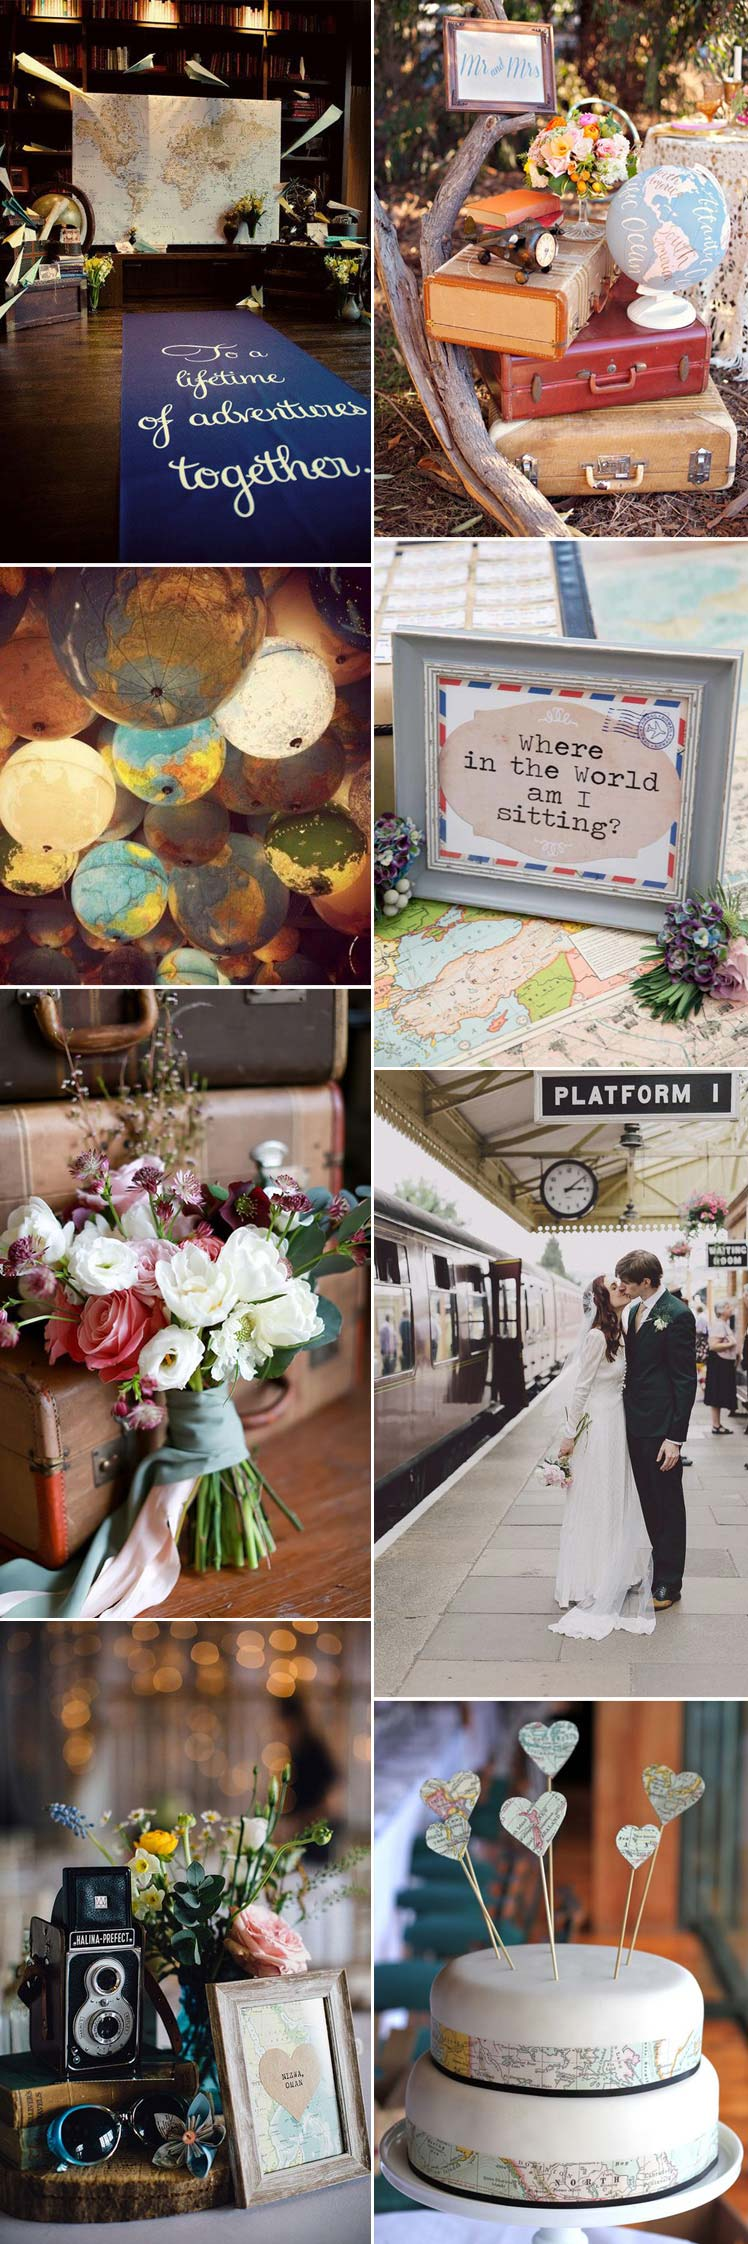 Explore vintage travel as a wedding theme